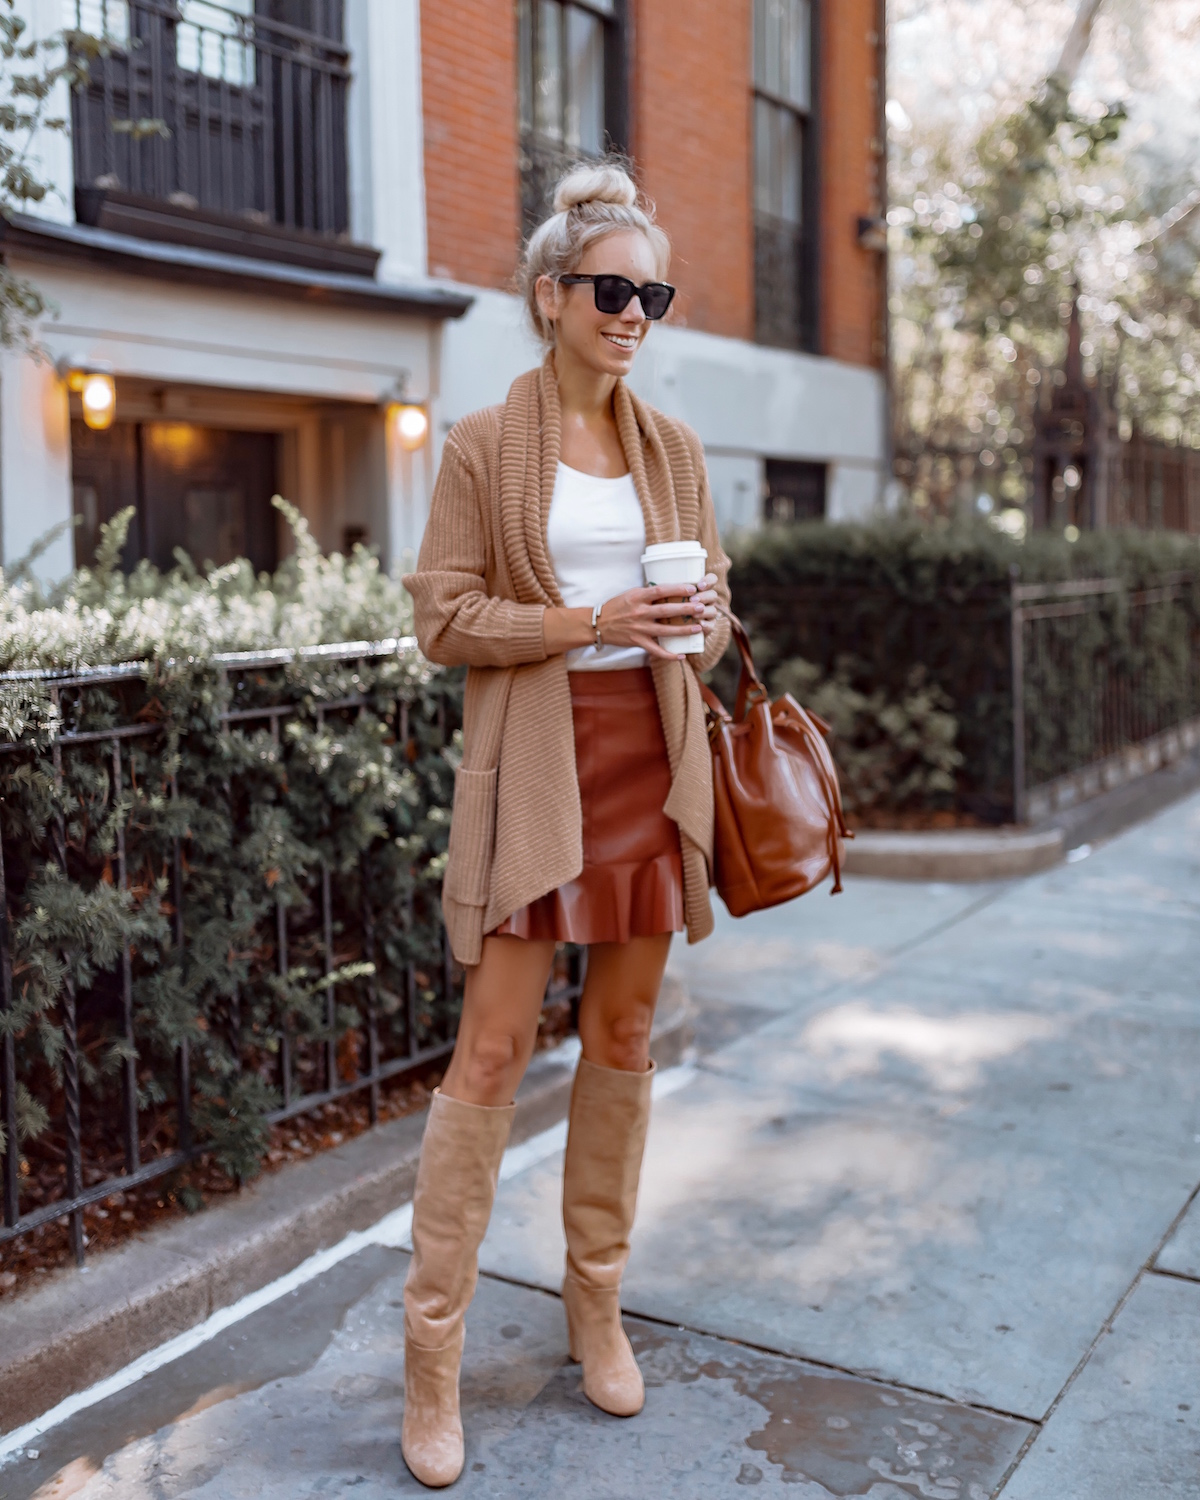 How To Style Short Skirts For Fall Weather Katie S Bliss